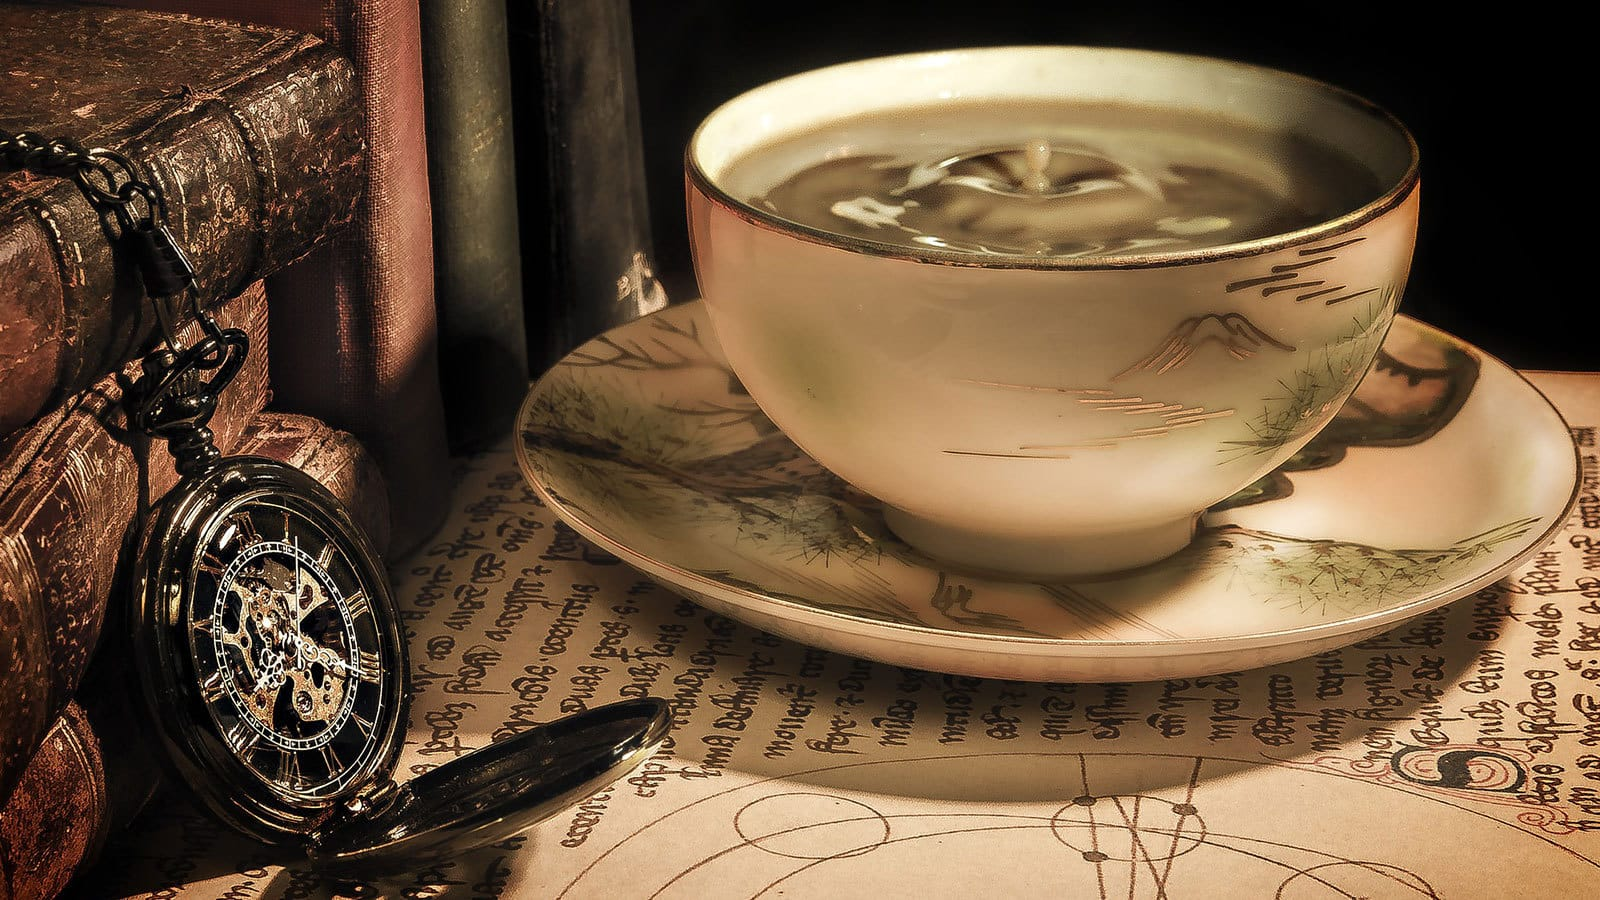 Christians have been drinking wine for two thousand years but coffee was a no-no until around 500 years ago. Before then, coffee was called Satan's drink and Christians were forbidden from drinking it. Why?